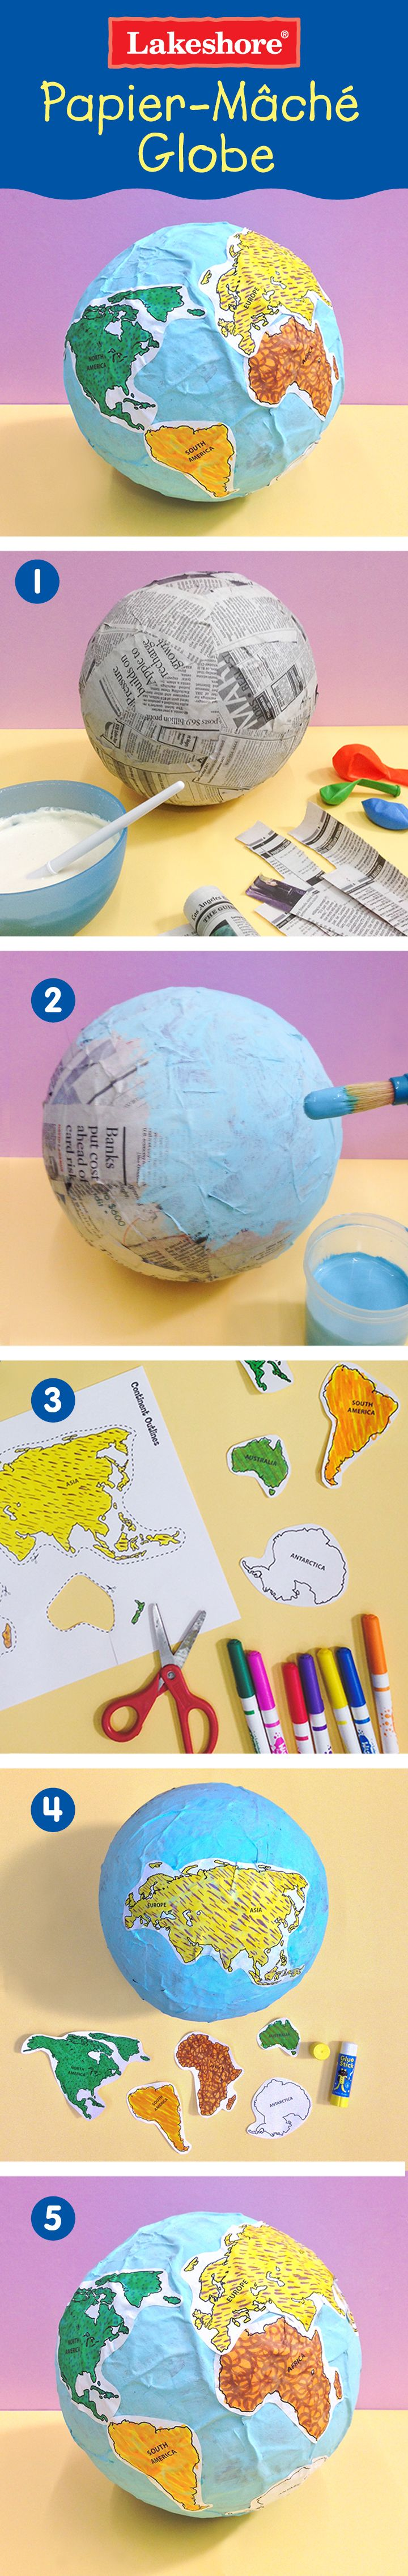 "Show students a globe of the Earth and help them glue their continents in the appropriate location on their balloon globes. Encourage students to mark an ""X"" on the location where they live!"